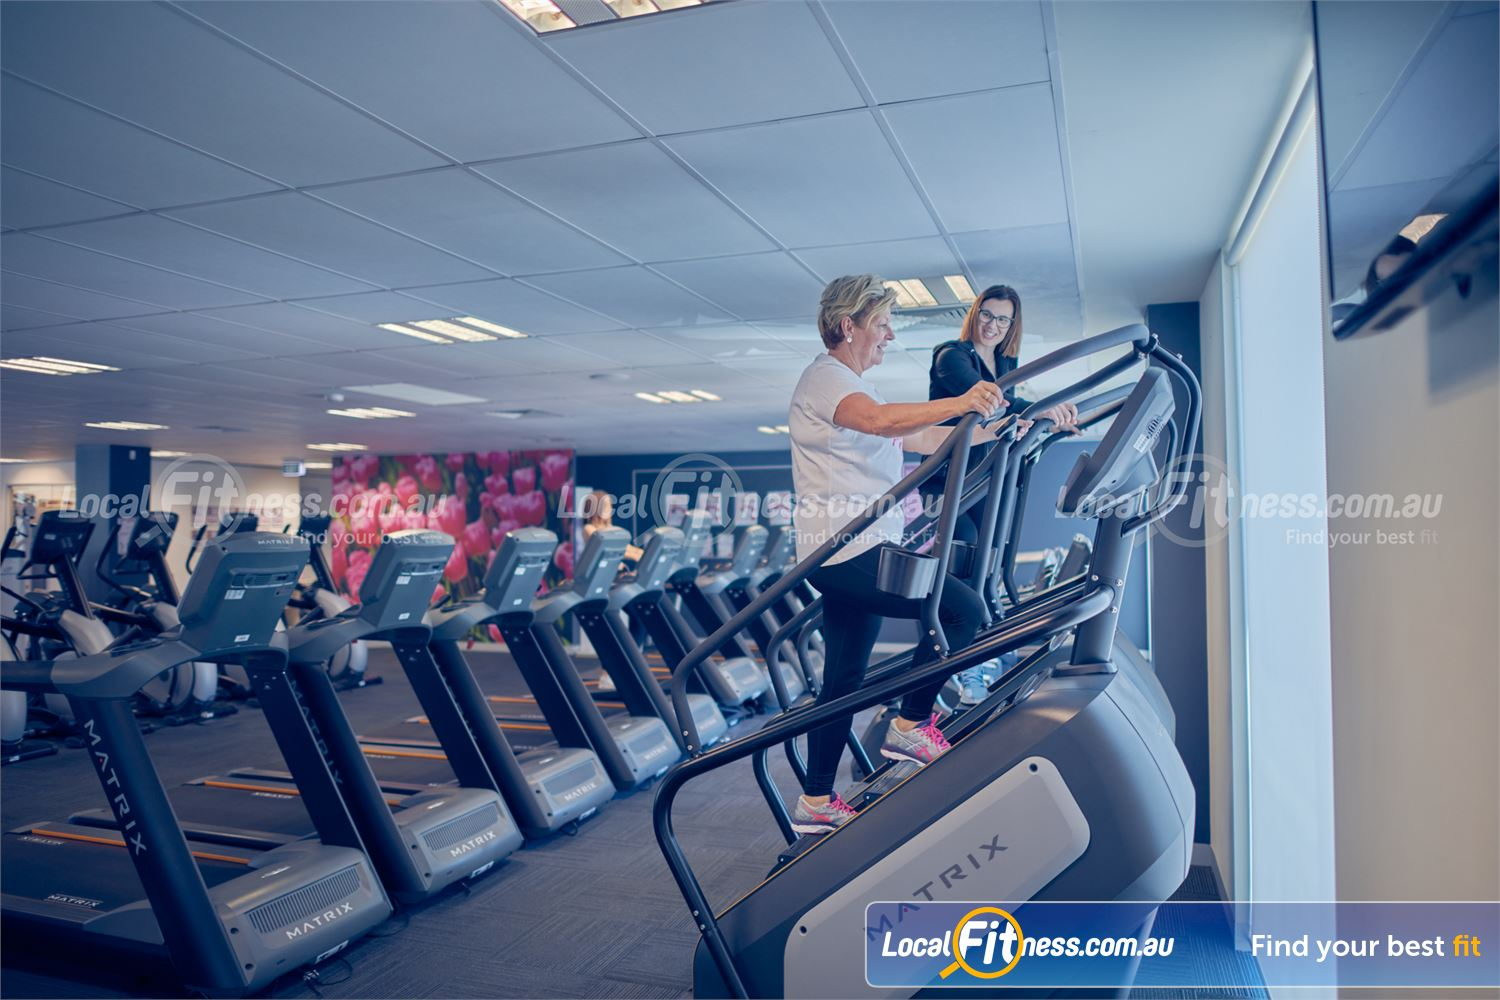 Fernwood Fitness Near Derrimut Full range of cardio include treadmills, climbmills and more.